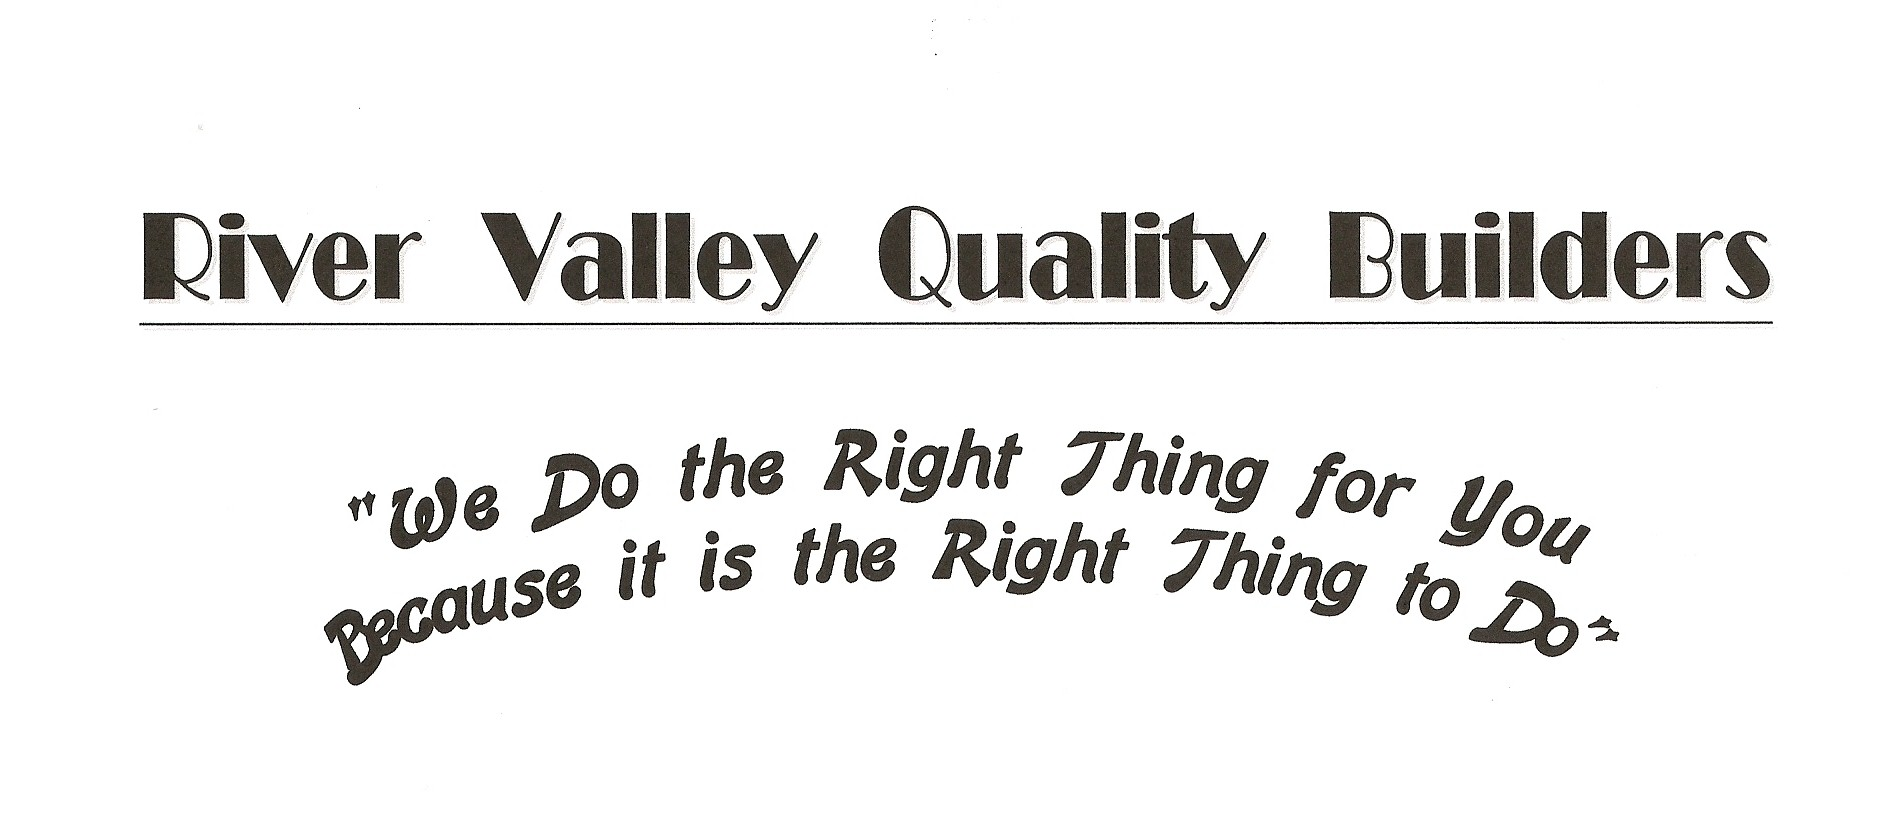 River Valley Quality Builders